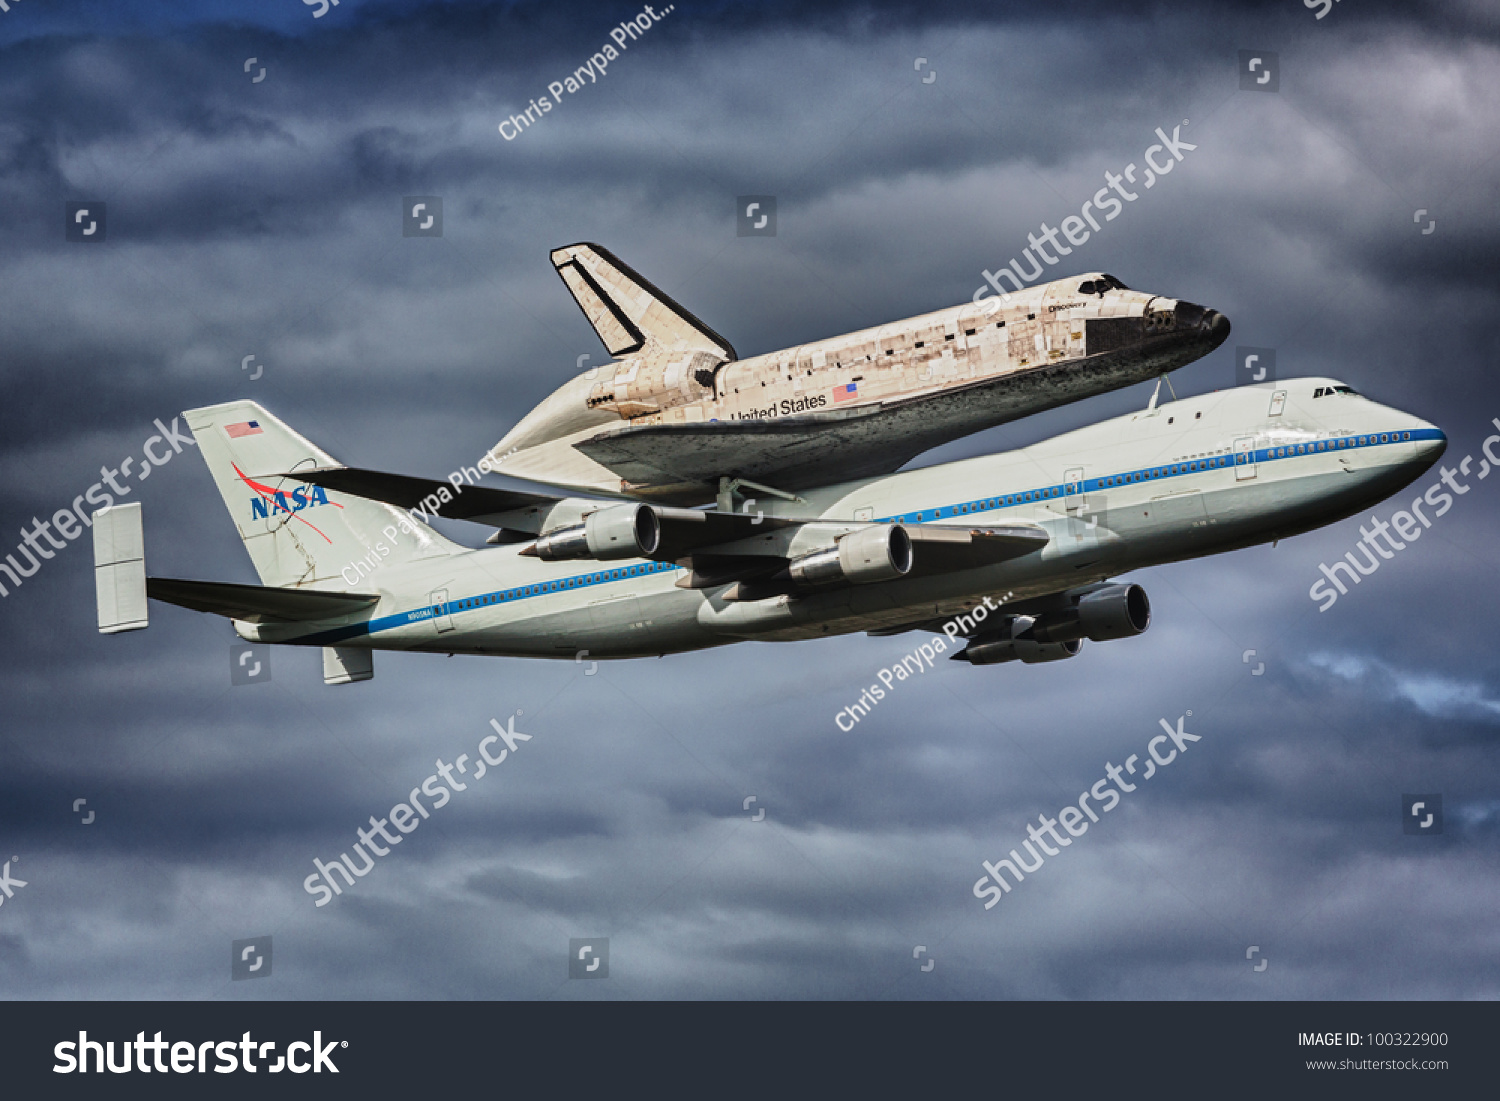 space shuttle discovery at dulles airport - photo #20